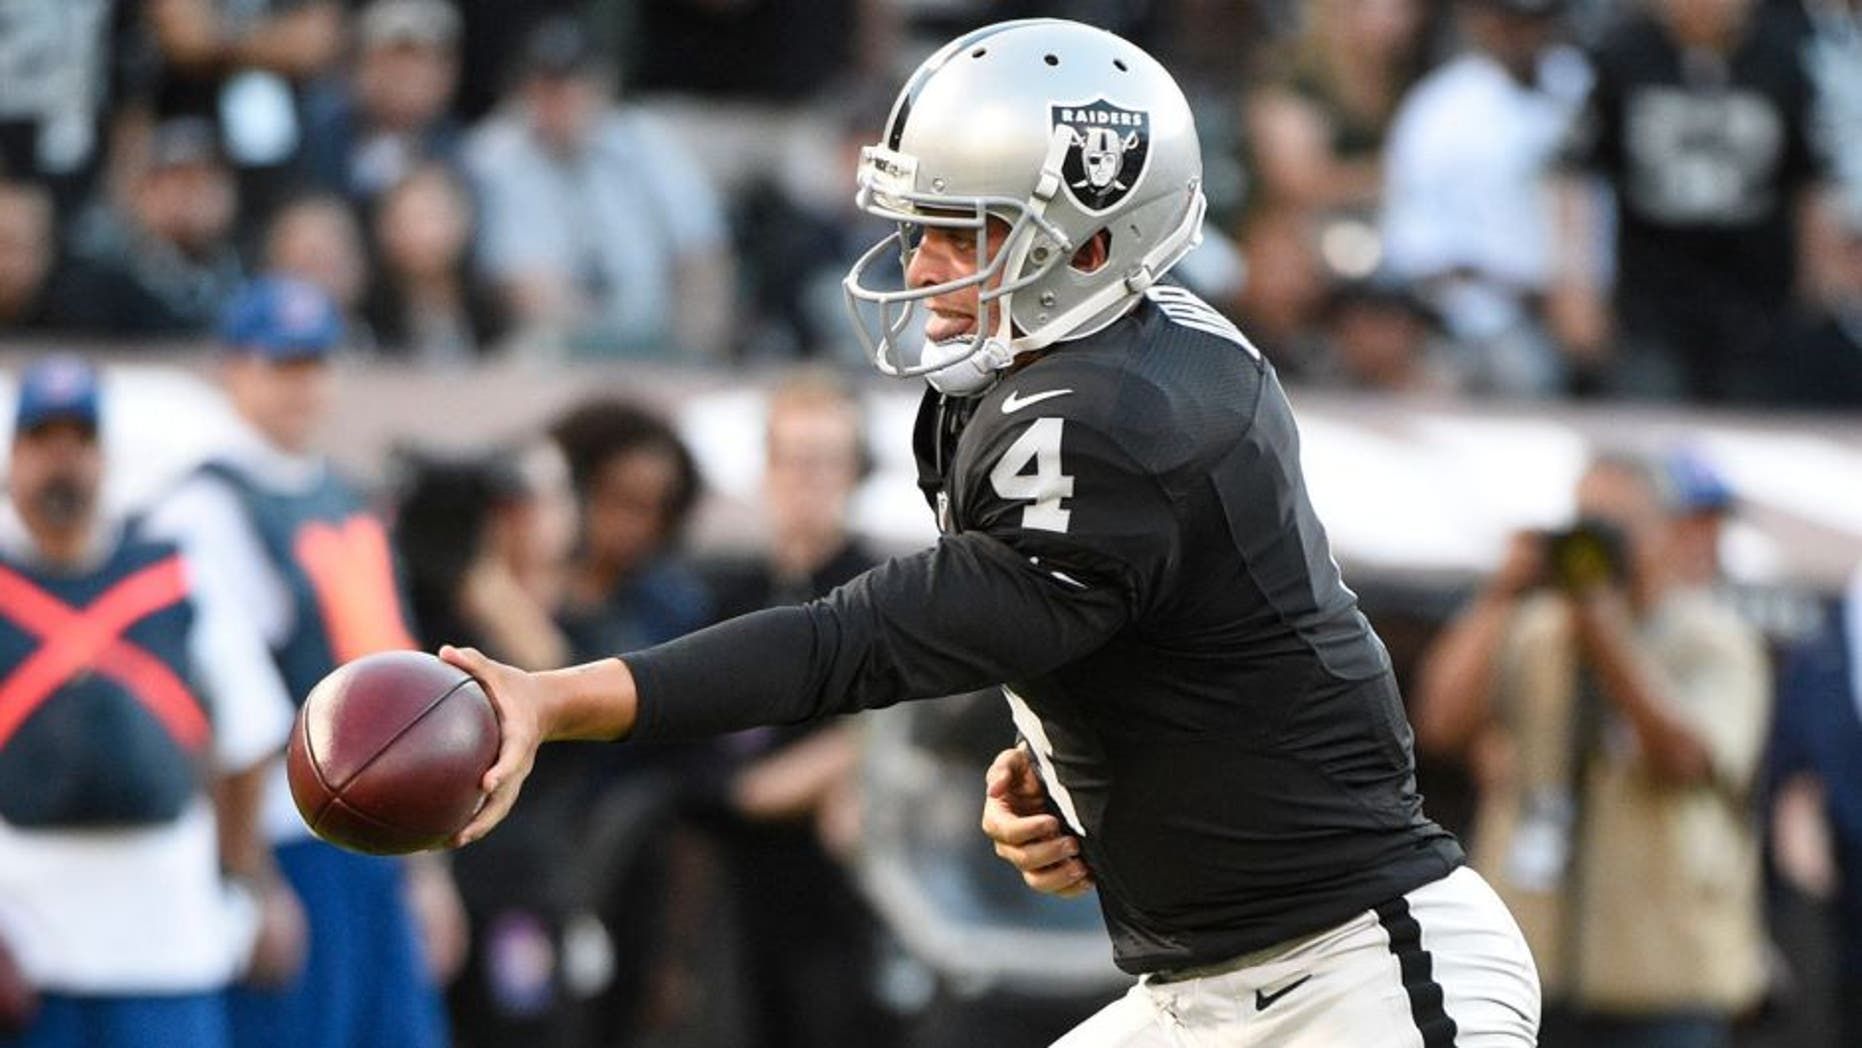 August 14, 2015; Oakland, CA, USA; Oakland Raiders quarterback Derek Carr (4) hands the football off against the St. Louis Rams during the first quarter in a preseason NFL football game at O.co Coliseum. Mandatory Credit: Kyle Terada-USA TODAY Sports